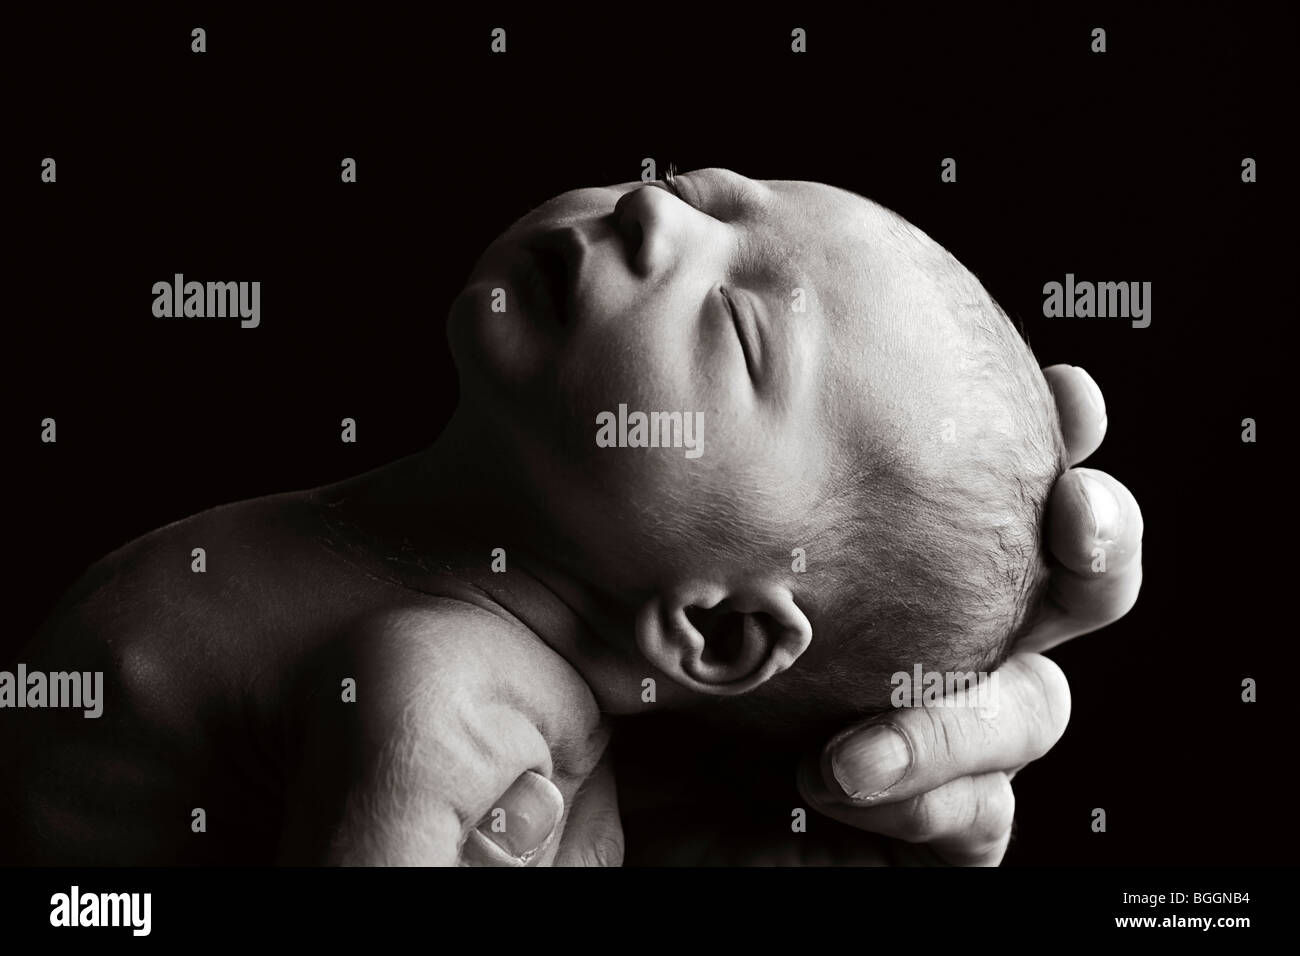 Beautiful Low Key Shot of a Father's Hand Holding a New Born Child - Stock Image